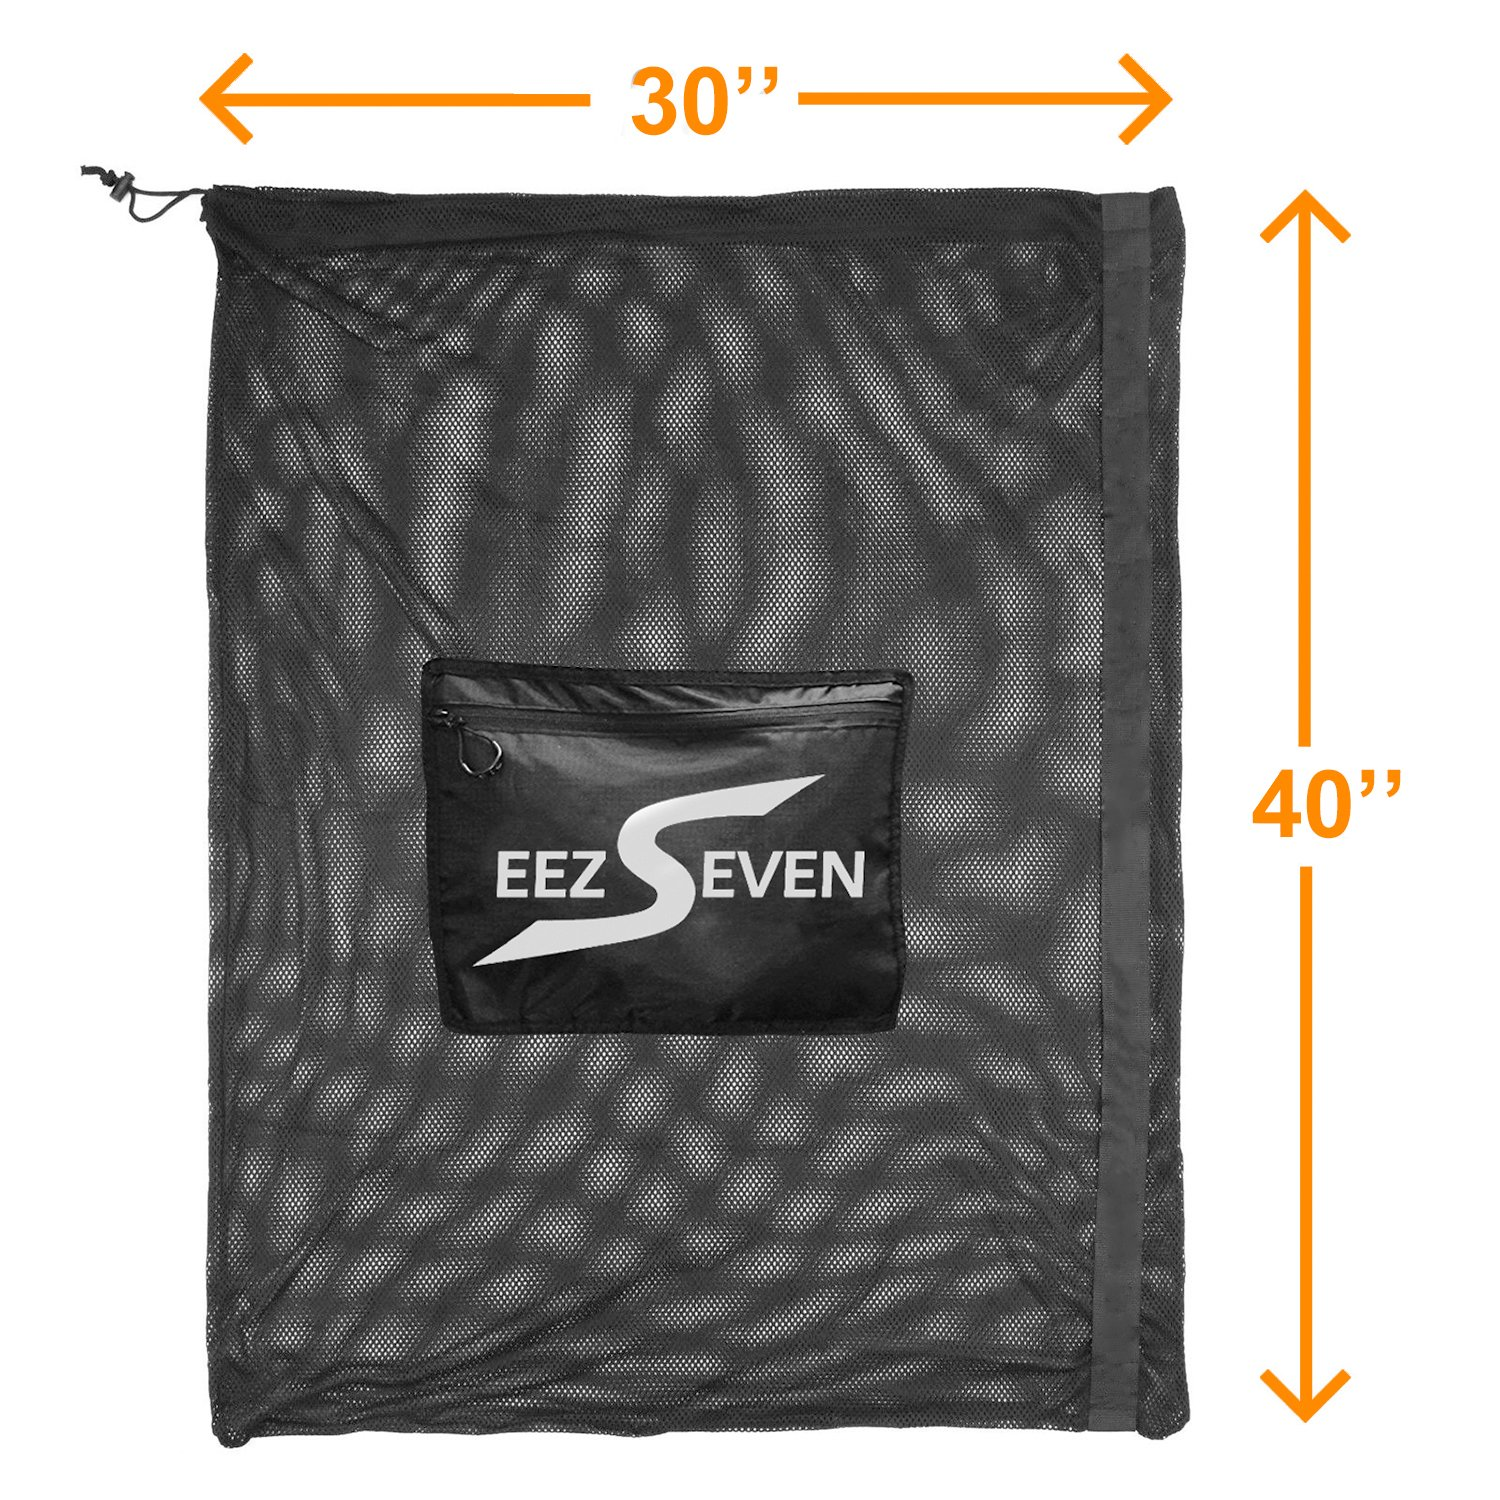 Heavy Duty Extra Large Ball Mesh Bag Soccer Ball Bag Equipment Bag For Sports Beach and Swimming Gears. Adjustable Shoulder Strap For Adults and Kids. Side Pocket for Your Personal Item 30 x 40 Inches by EEZSEVEN (Image #5)